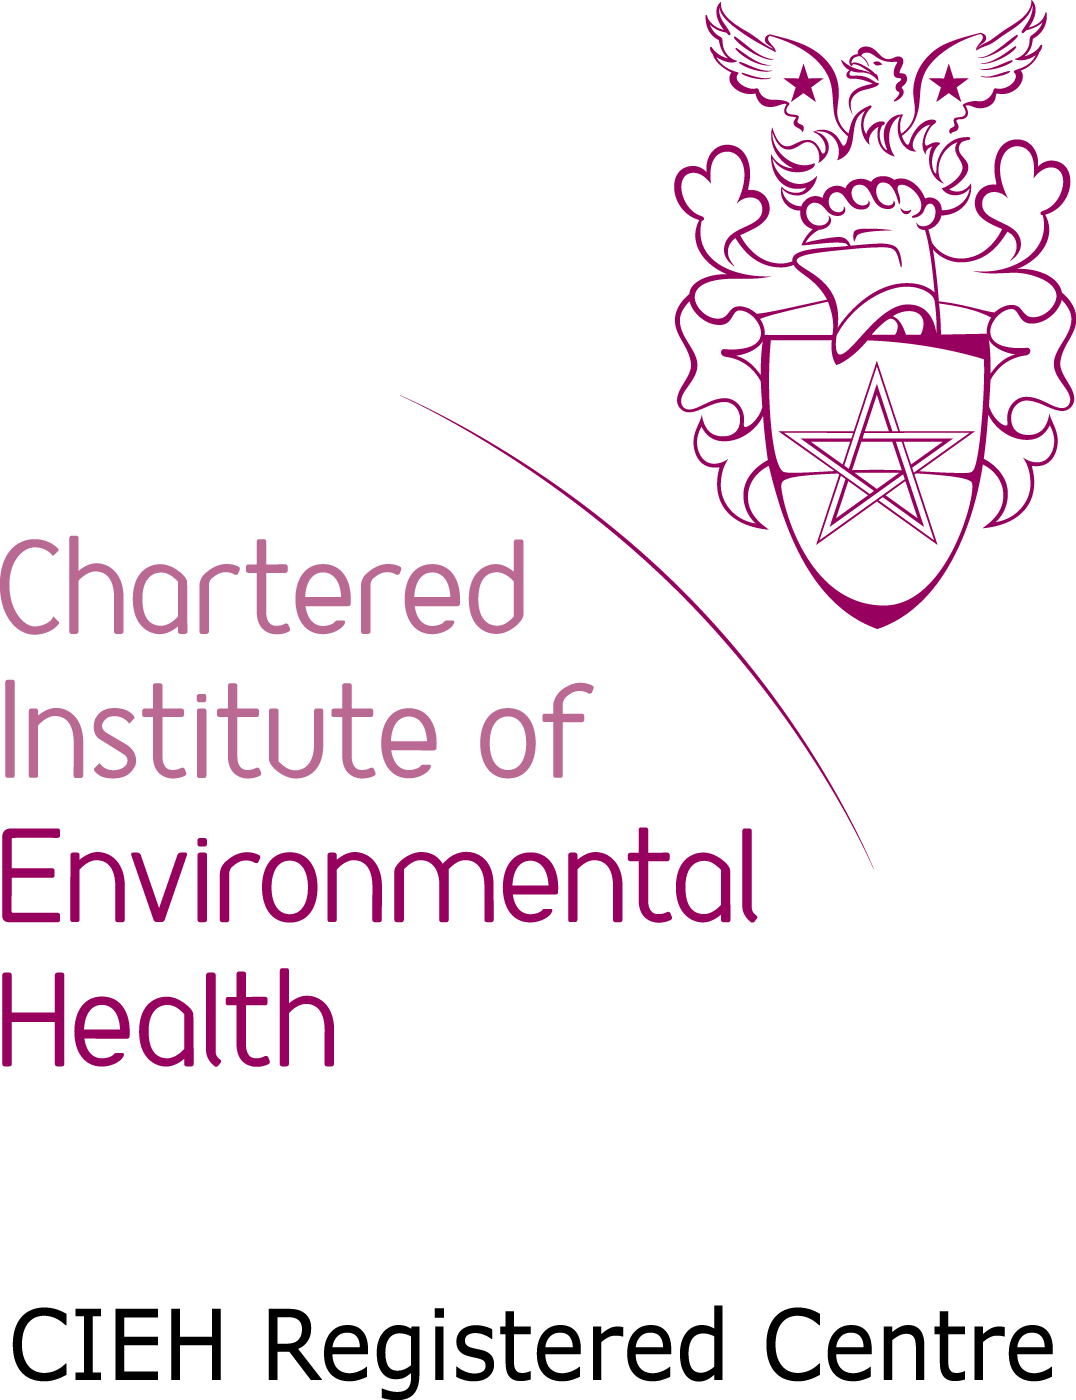 The Chartered Institute of Environmental Health